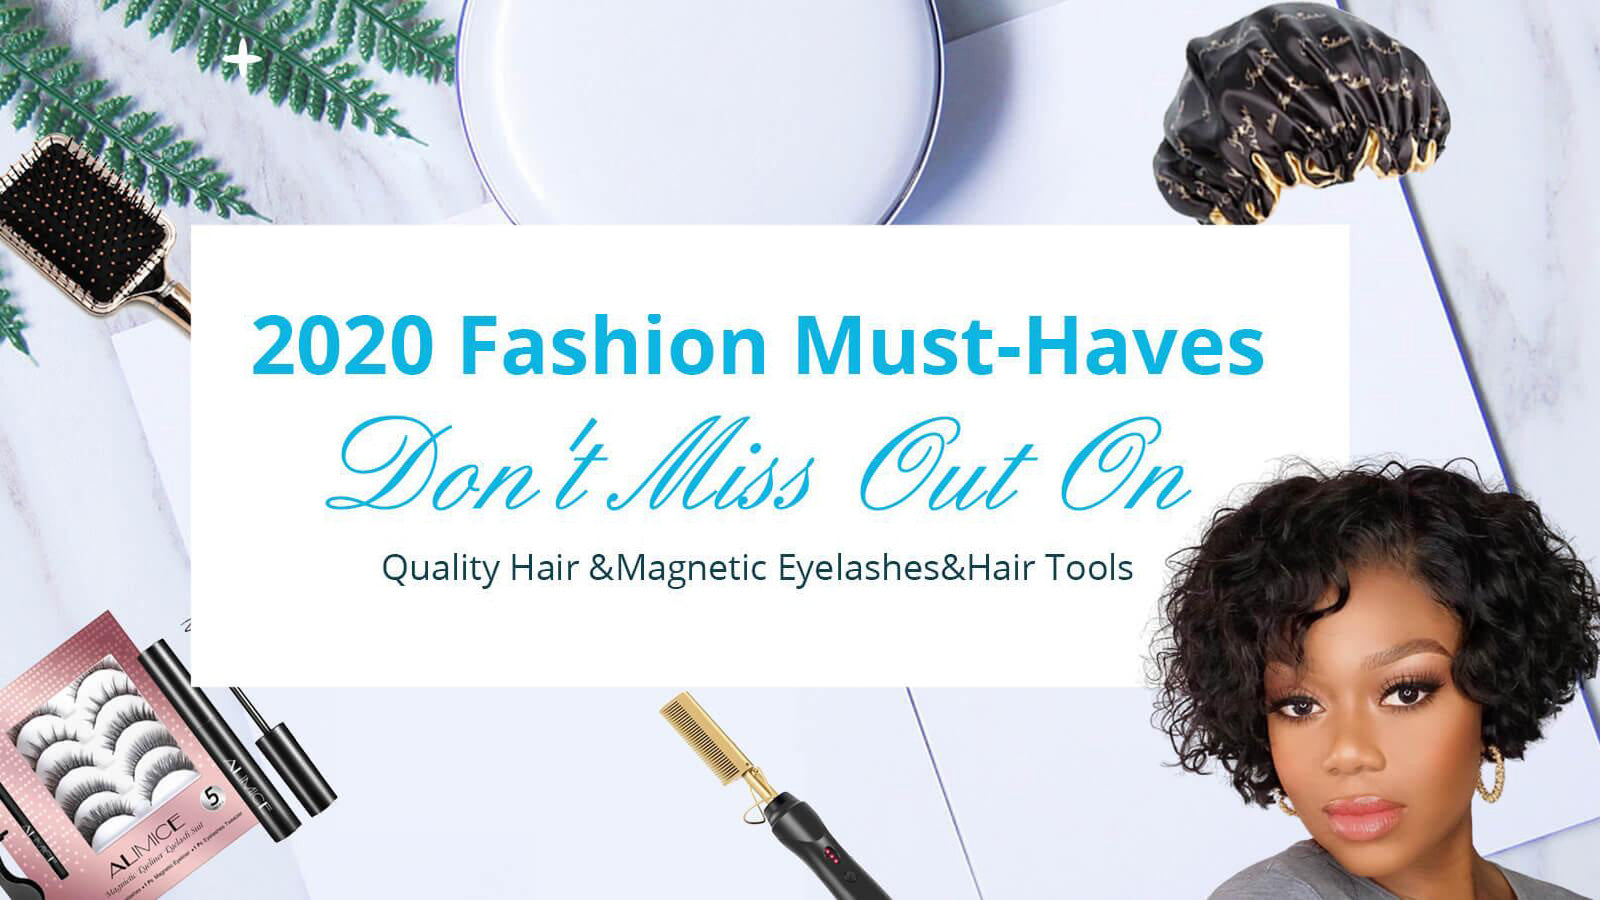 2020 Fashion Must-Haves